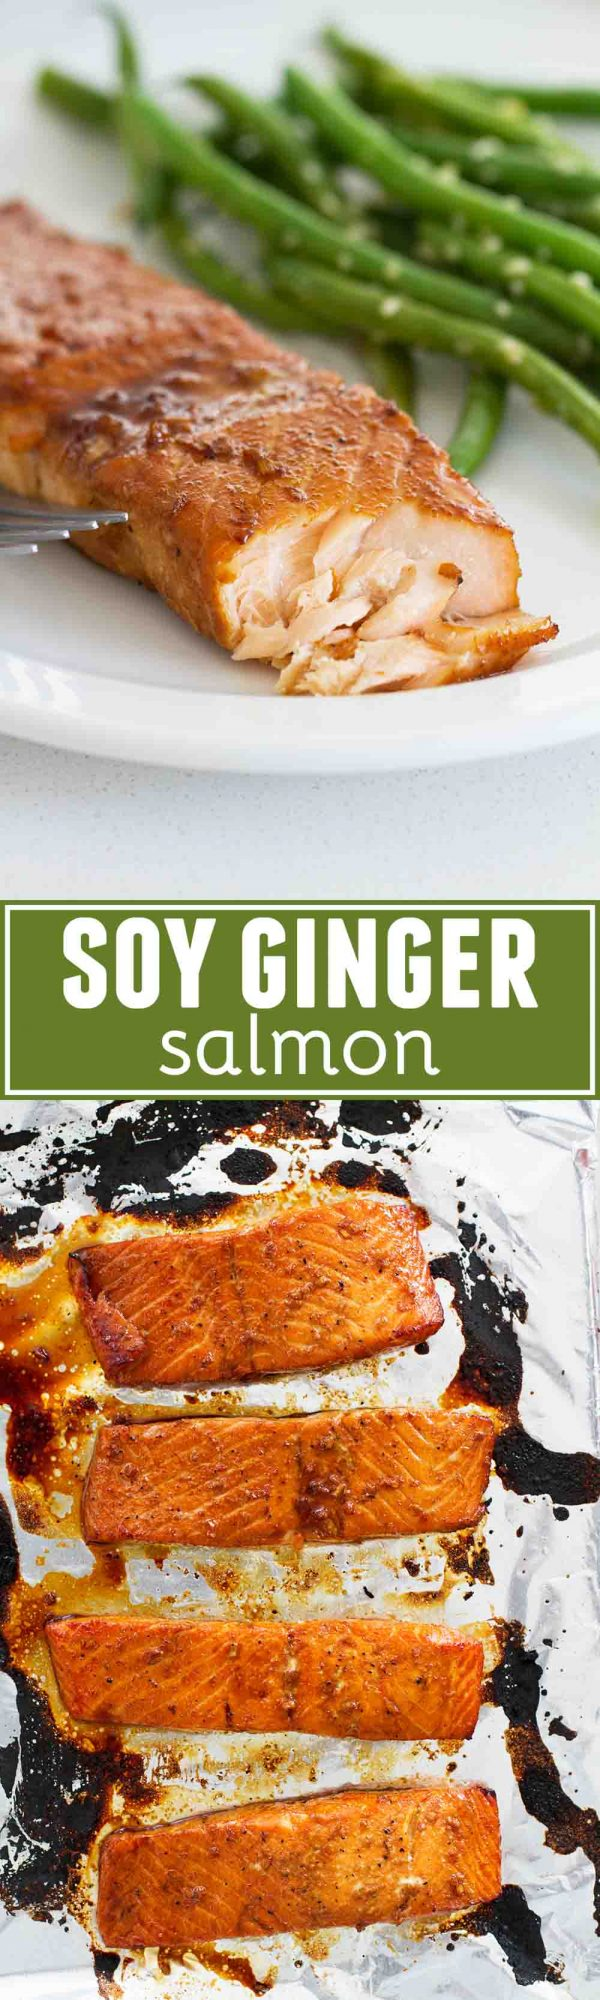 A simple recipe for Soy Ginger Salmon that is bursting with flavor. A few ingredients combine to make the most flavorful marinade. This is a salmon recipe anyone could make!